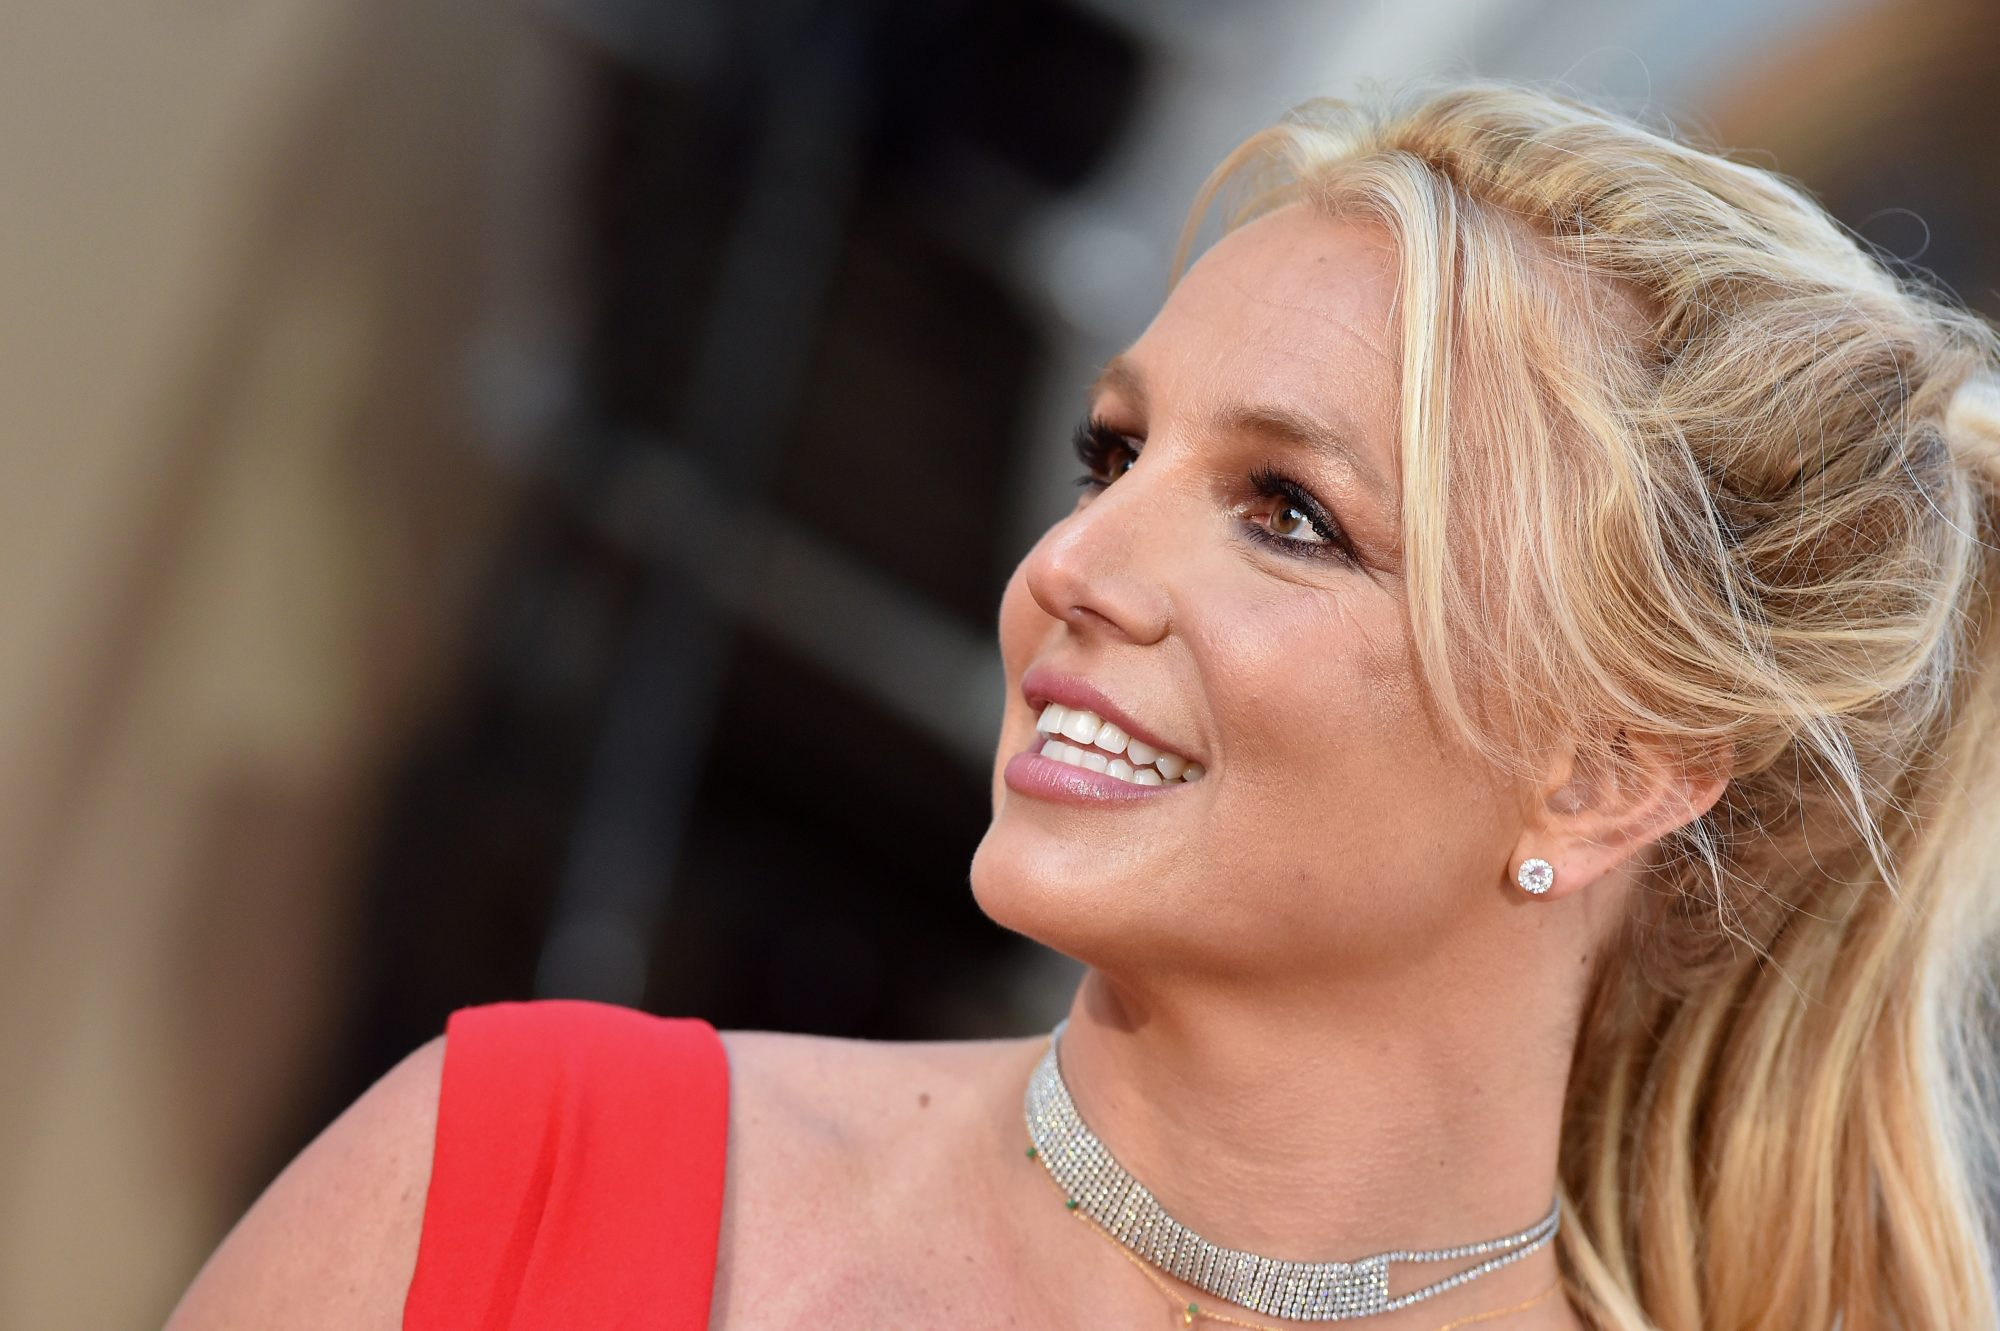 Britney Spears Is In Hot Water Over Her Latest Instagram